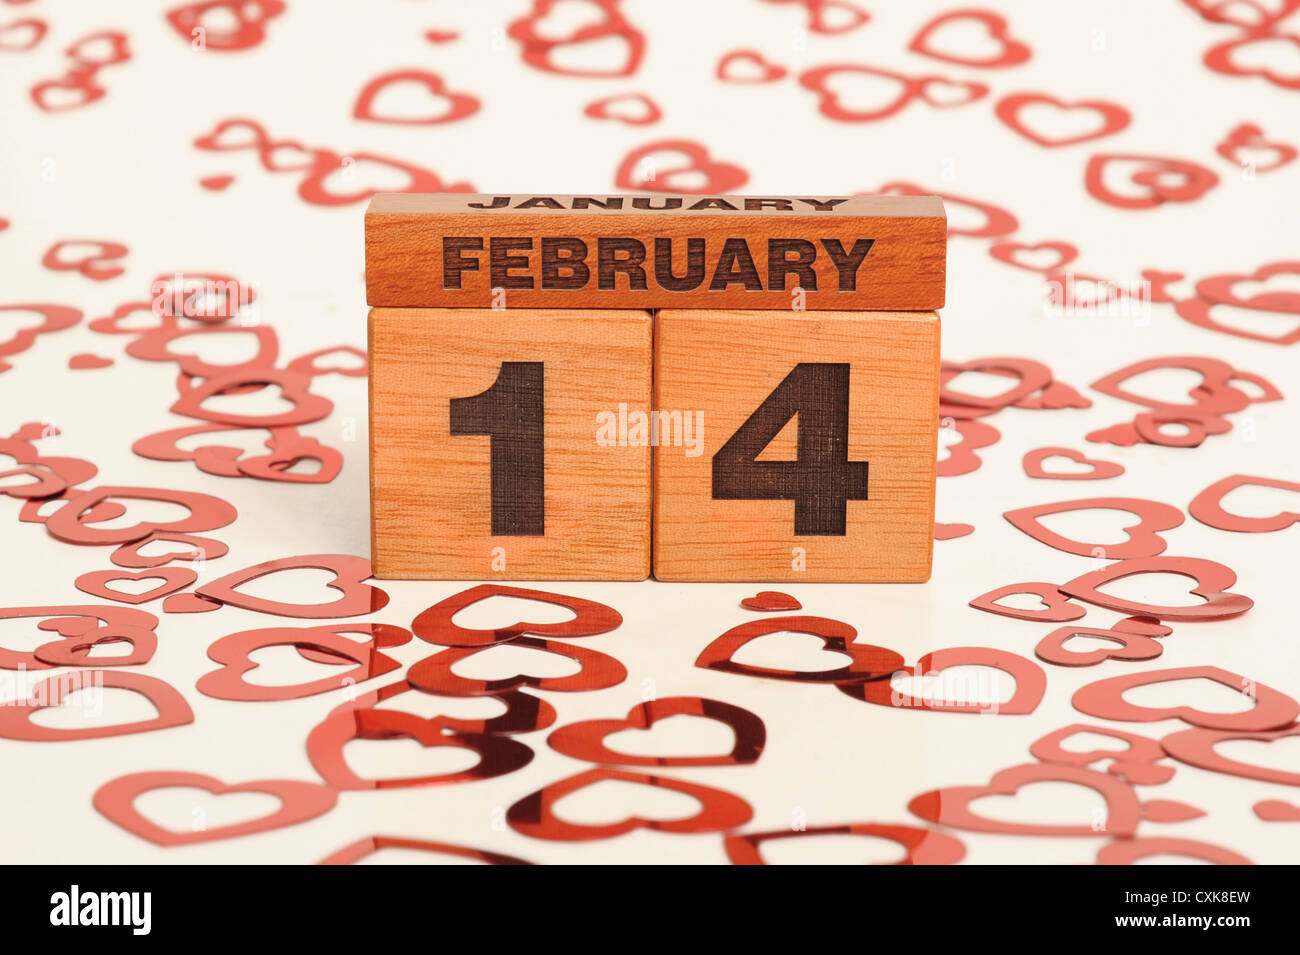 Blocks of wood giving the date of valentines day - Stock Image